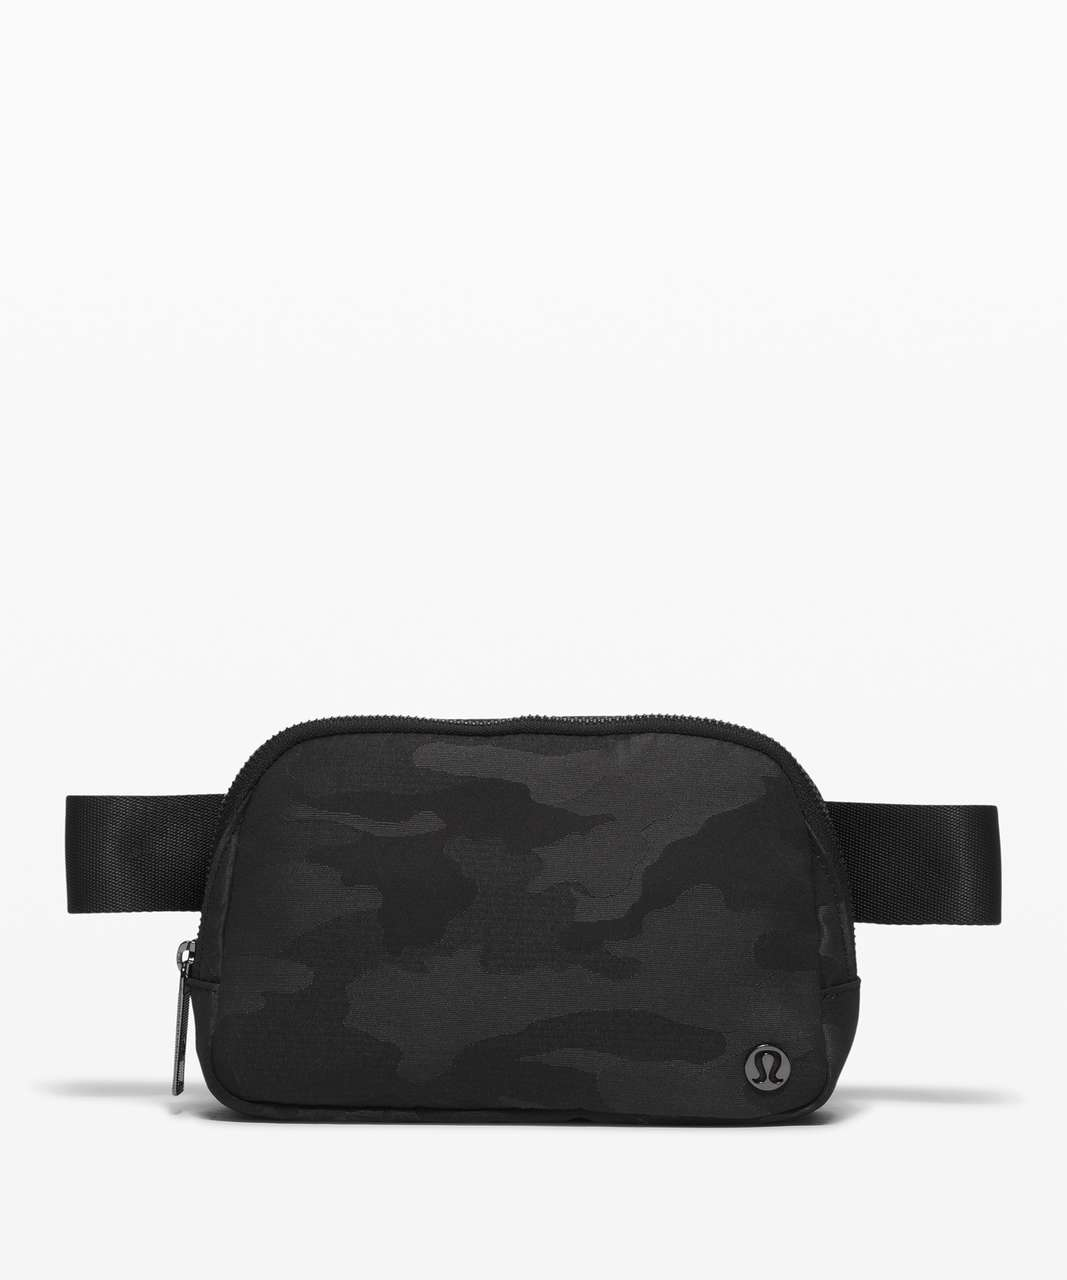 Lululemon Everywhere Belt Bag *1L - Heritage Camo Jacquard Max Black Graphite Grey